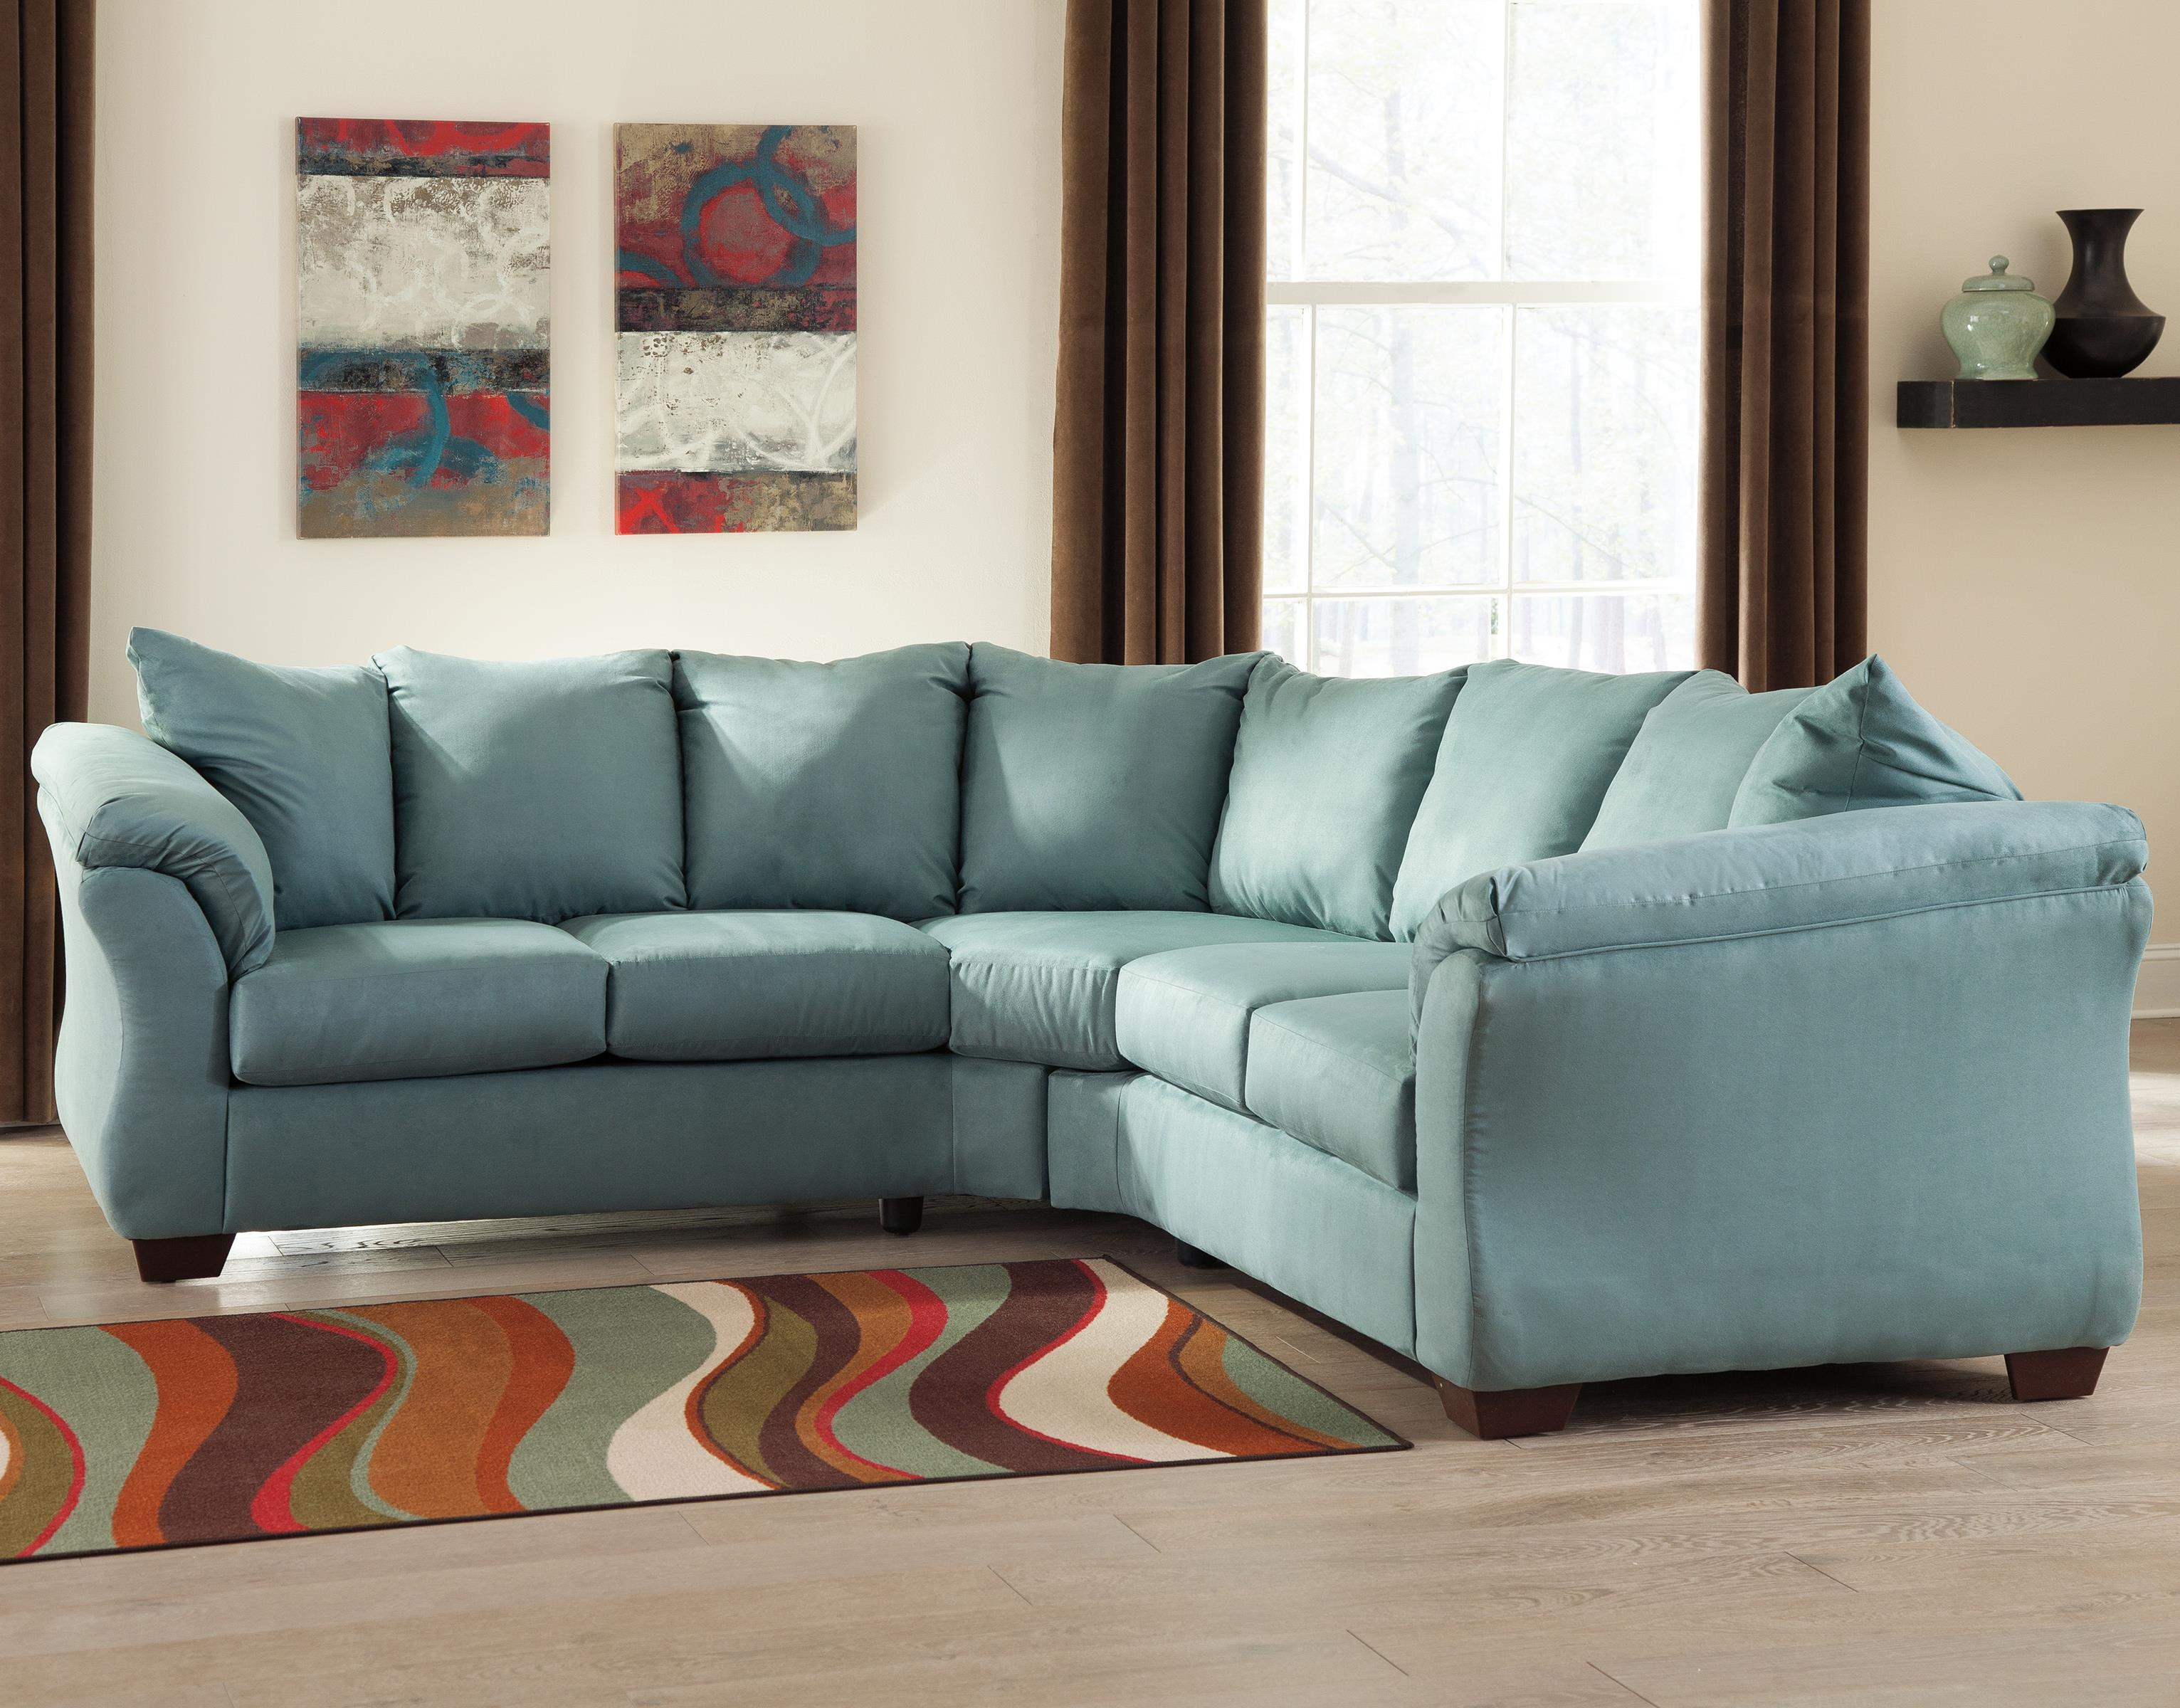 Awesome Darcy Sky Contemporary Sectional Sofa With Sweeping Pillow Arms By Signature Design By Ashley At Becker Furniture World Cjindustries Chair Design For Home Cjindustriesco